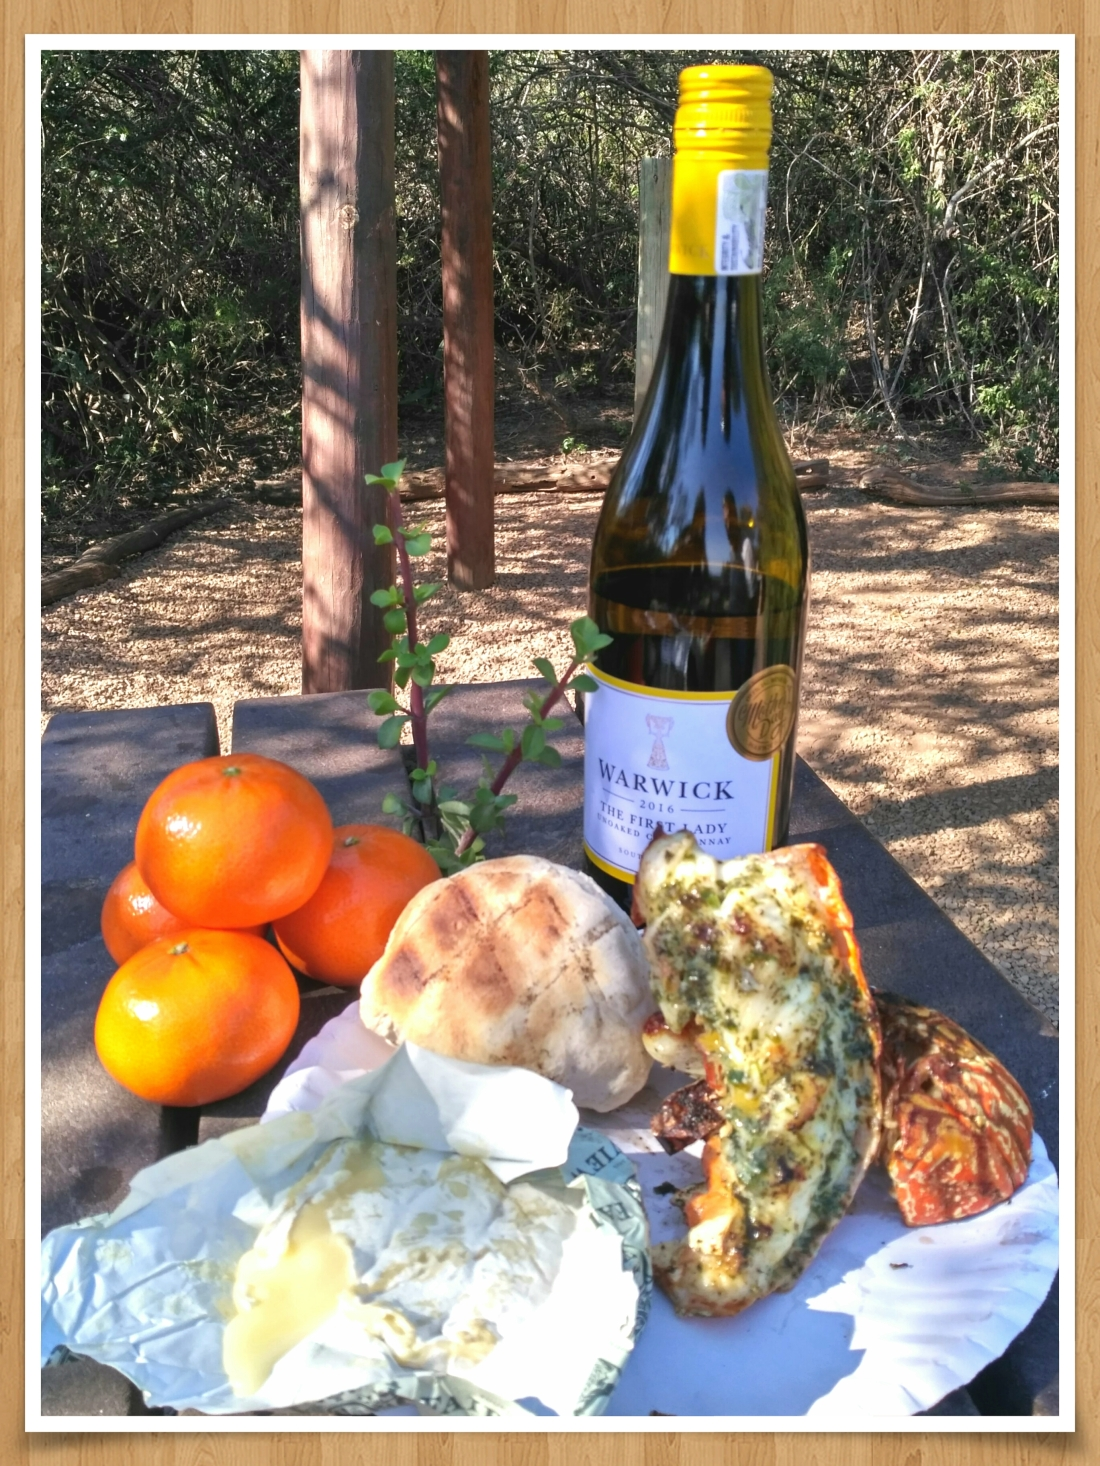 Lobster, Roosterkoek and Camembert on the braai with white wine